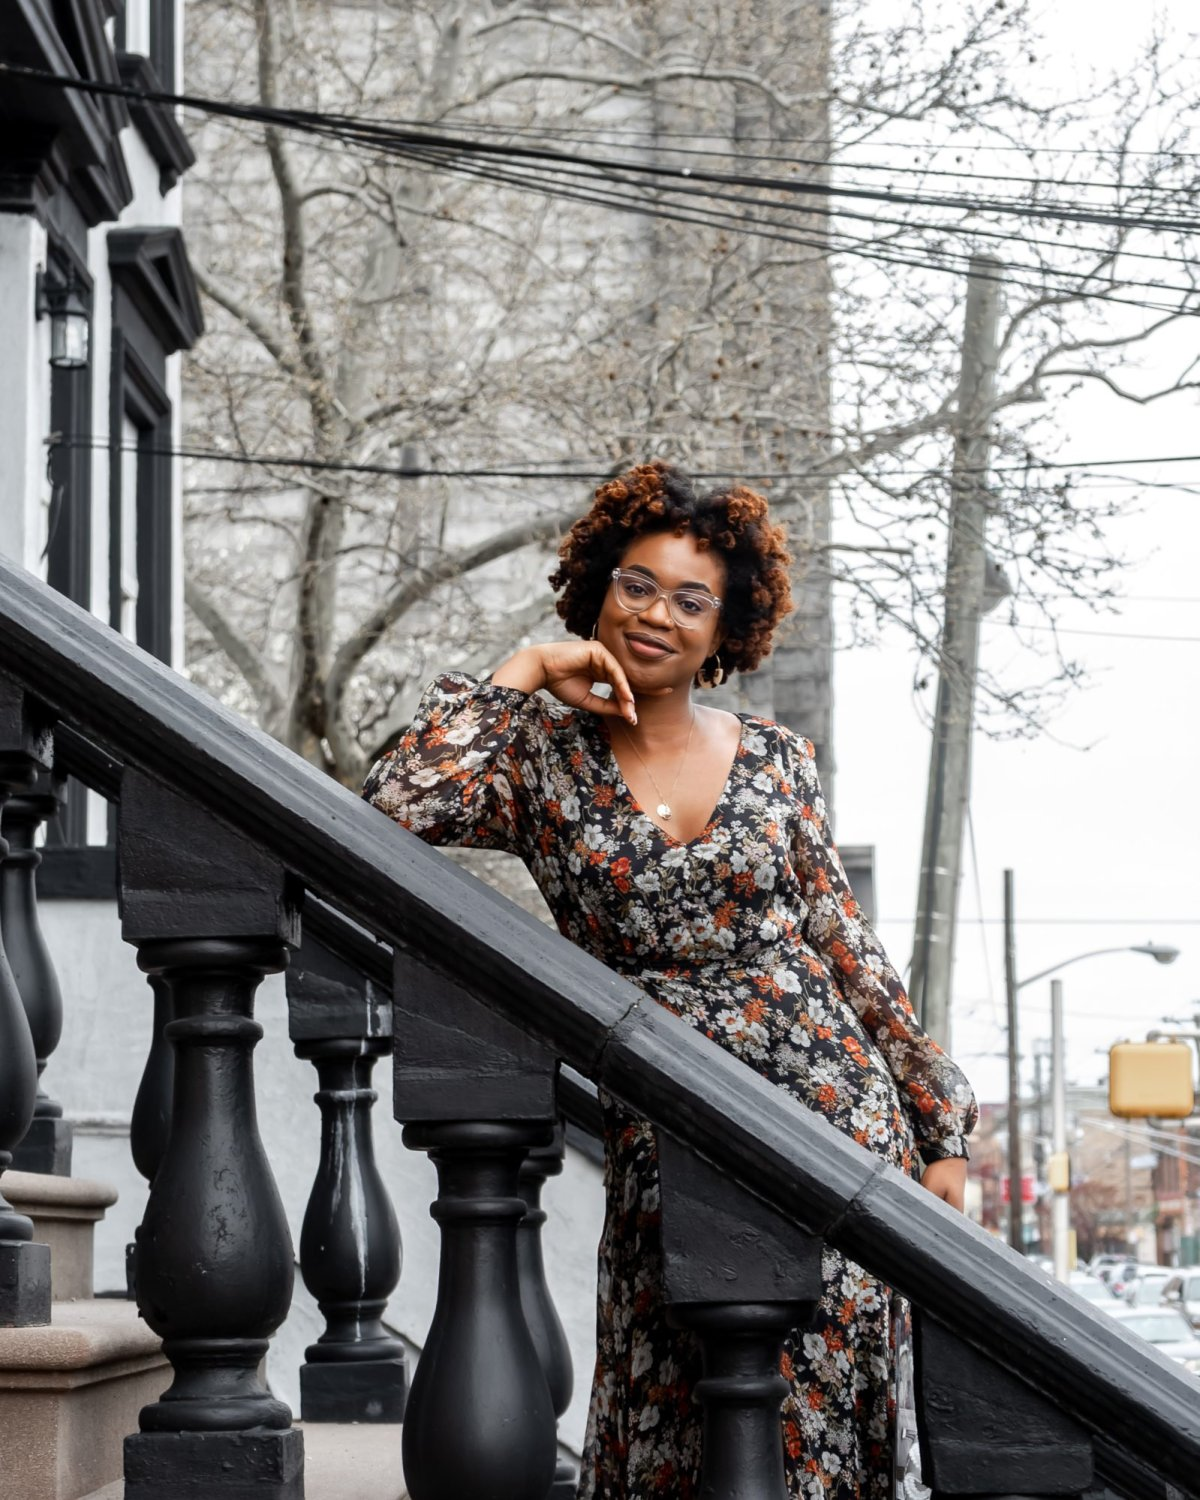 Blogger Ijeoma Kola shares her favorite places in Jersey City, including where to eat, where to work, and where to hang out. Whether you're thinking of moving to Jersey City or just paying it a visit, this guide to Jersey City gives you all the inside scoop!